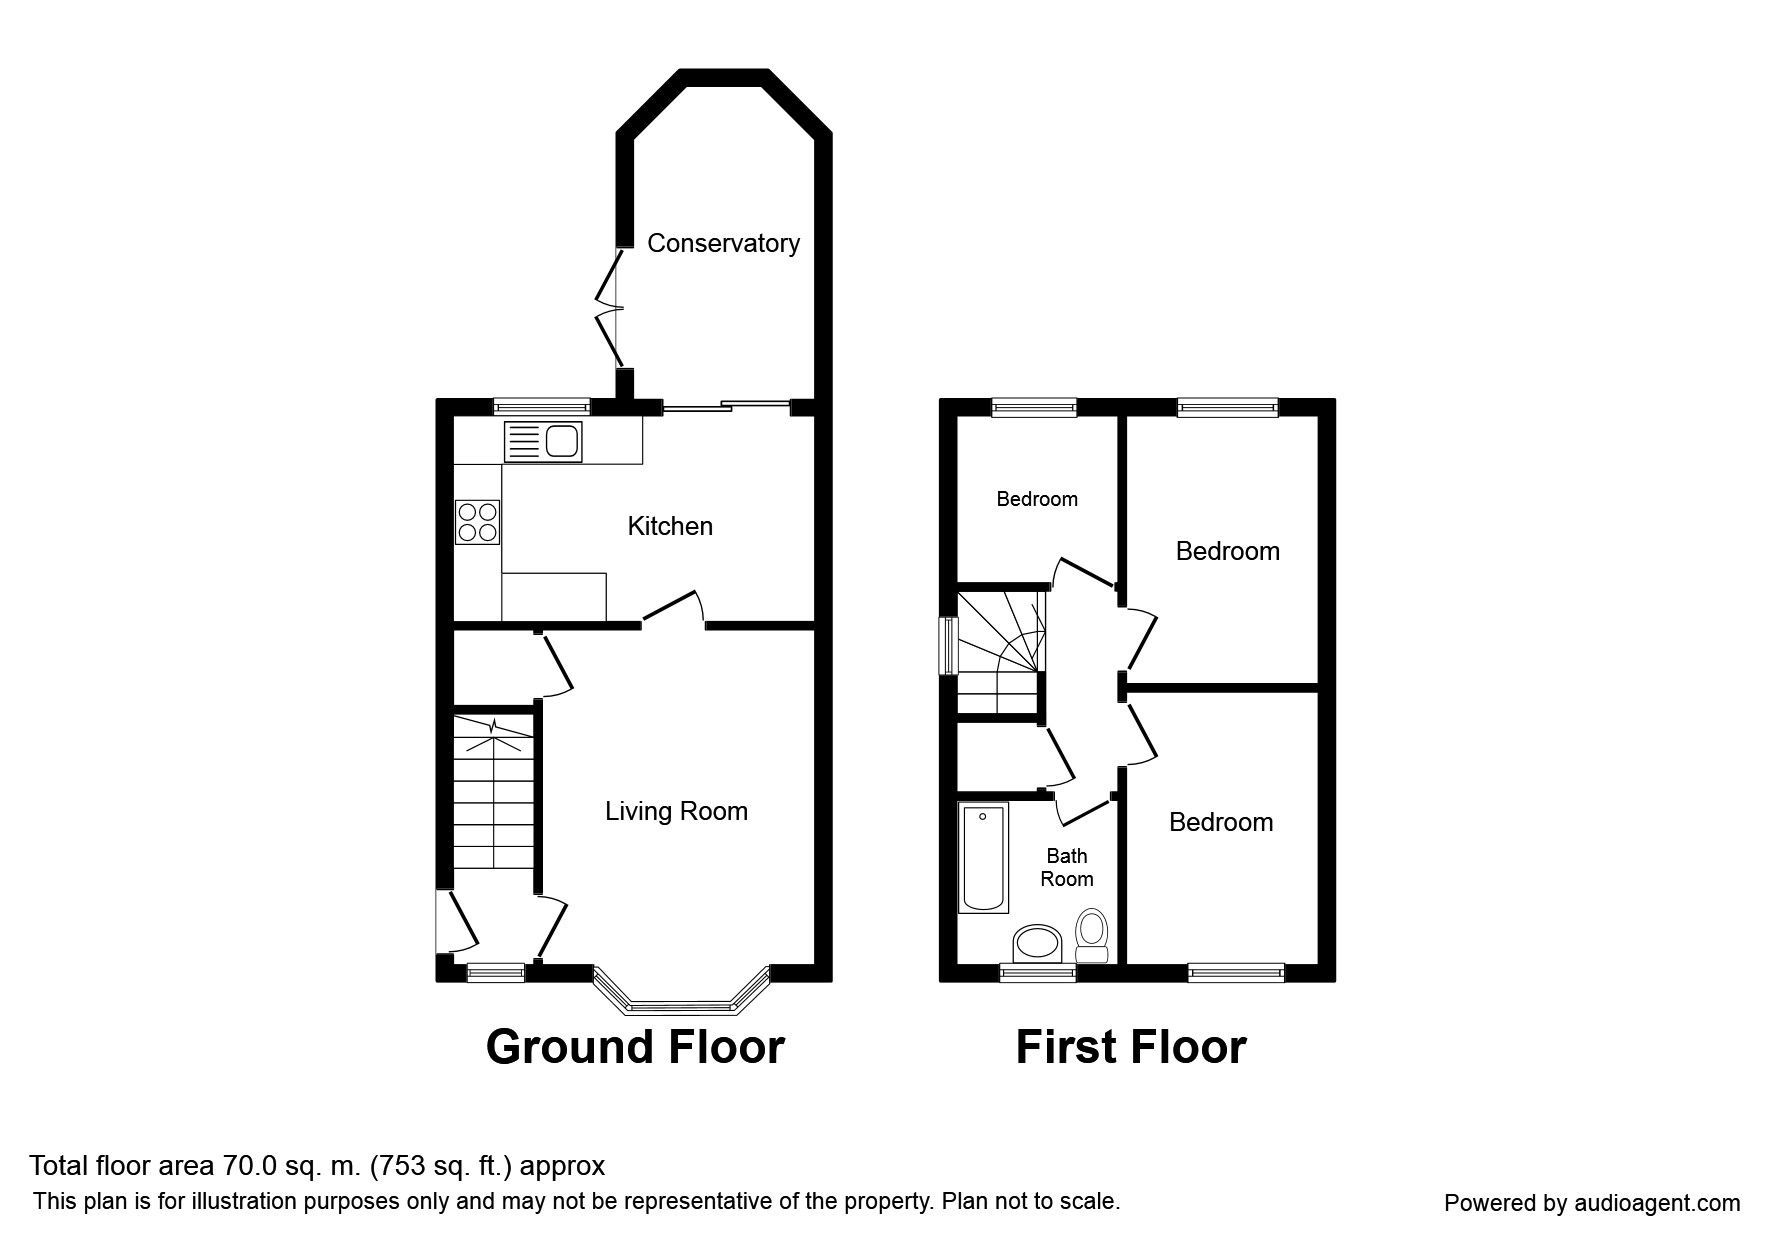 2 bedroom Flat for sale, The Grange Beever Lane, Barnsley, South ...